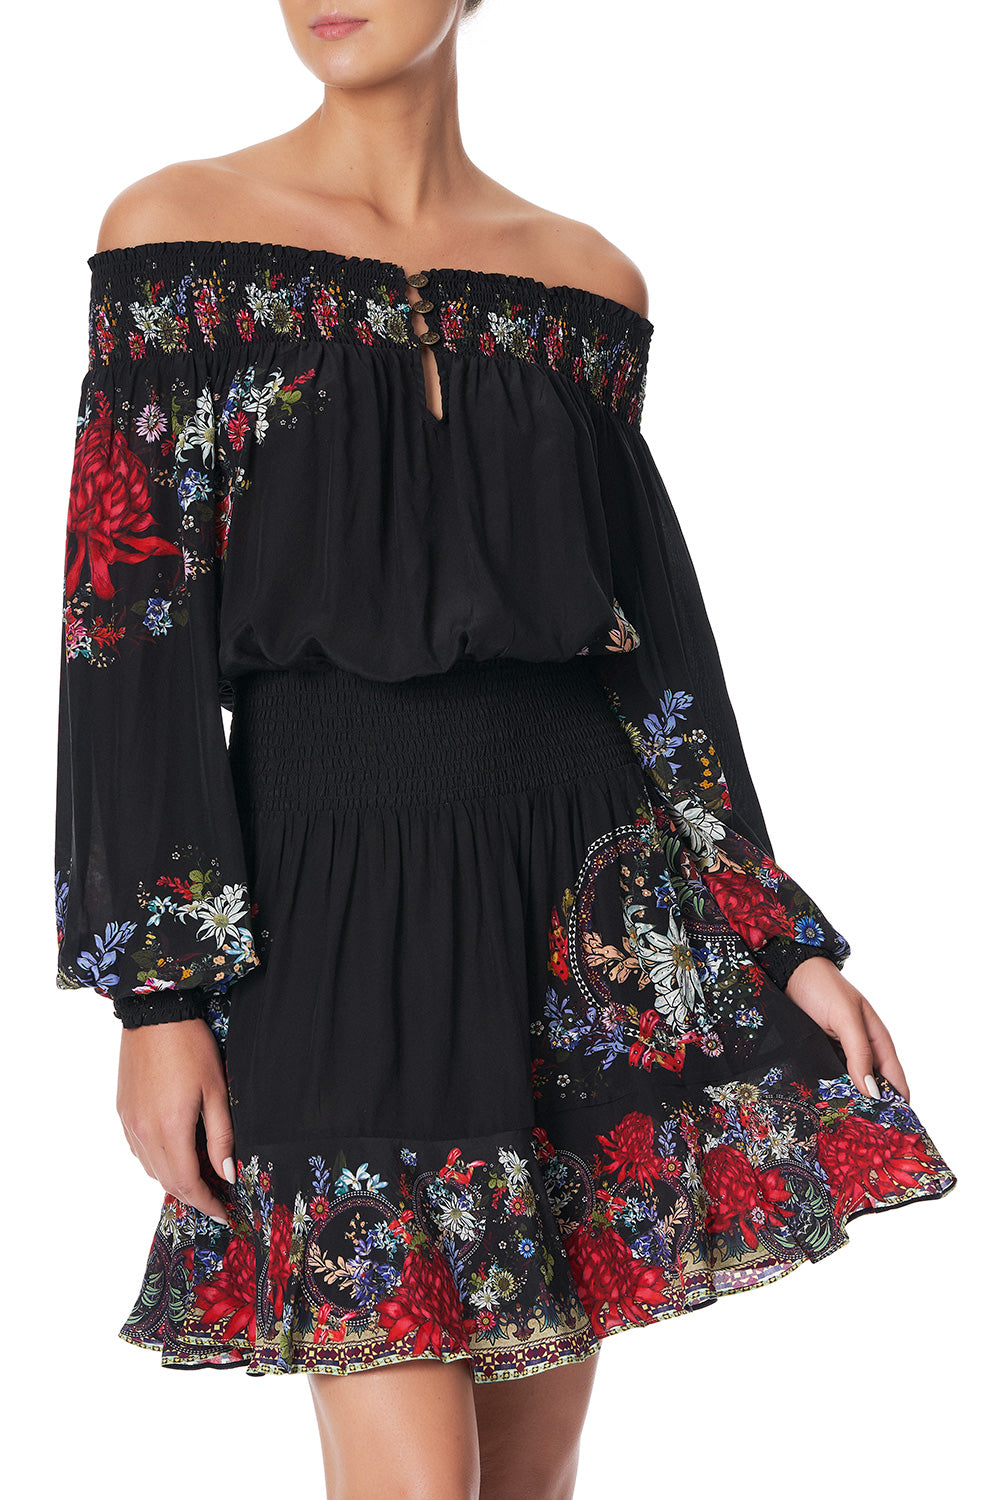 OFF SHOULDER SHORT DRESS MS MATILDA